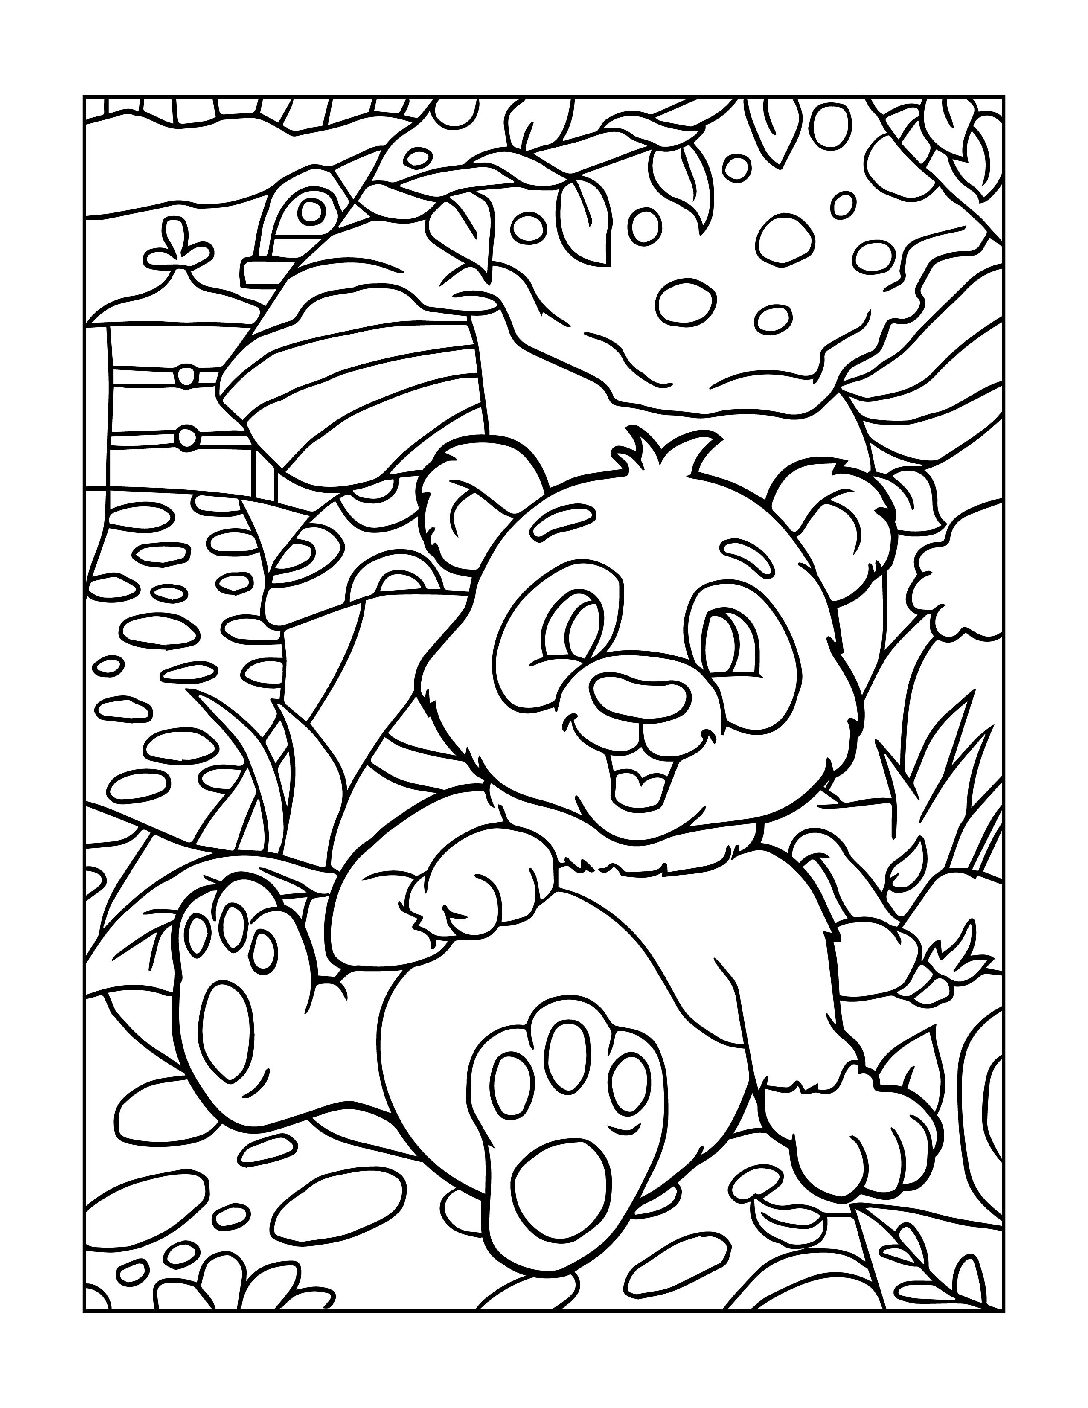 Coloring-Pages-Zoo-Animals-12-01-1-pdf Free Printable  Zoo Animals Colouring Pages